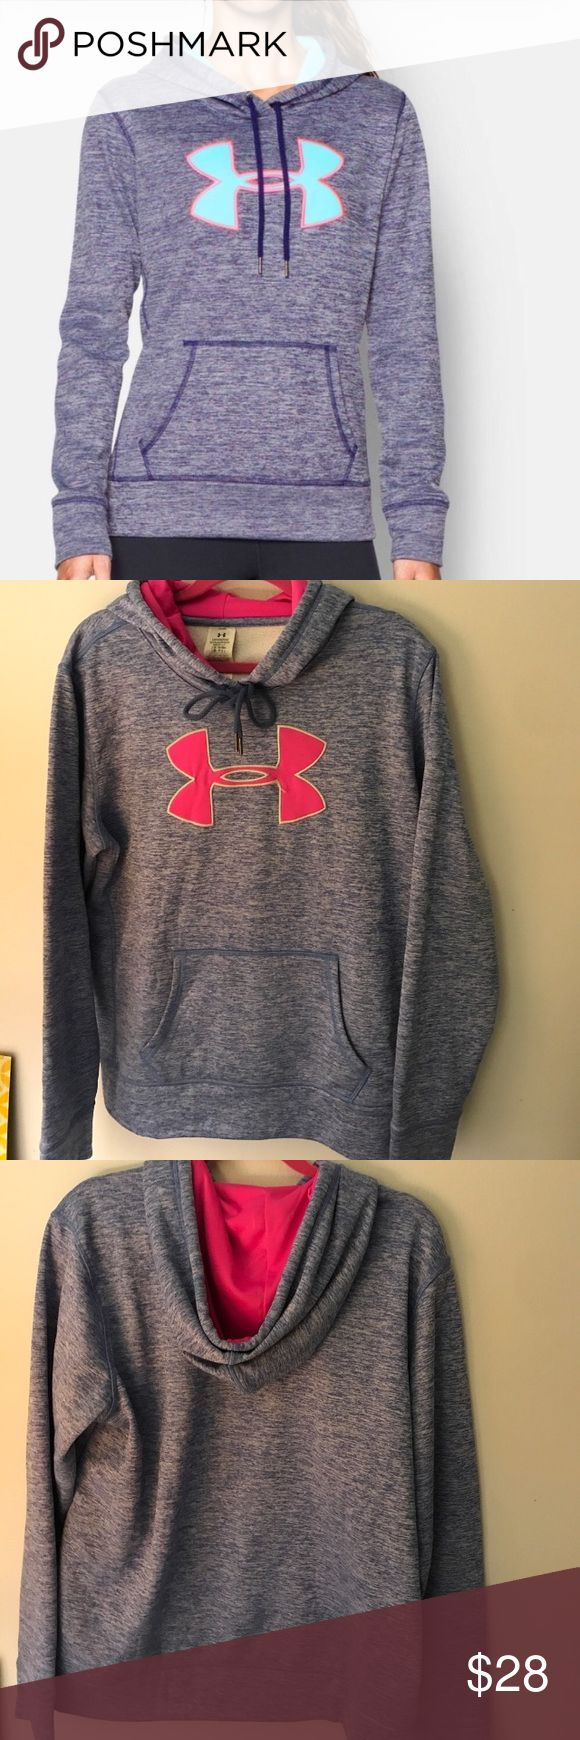 Under Armour WINTER ❄️ SALE Under Armour  Great condition ✔️ Like new ✔️  Only worn once✔️ No damages or any stains ✔️ Under Armour Jackets & Coats